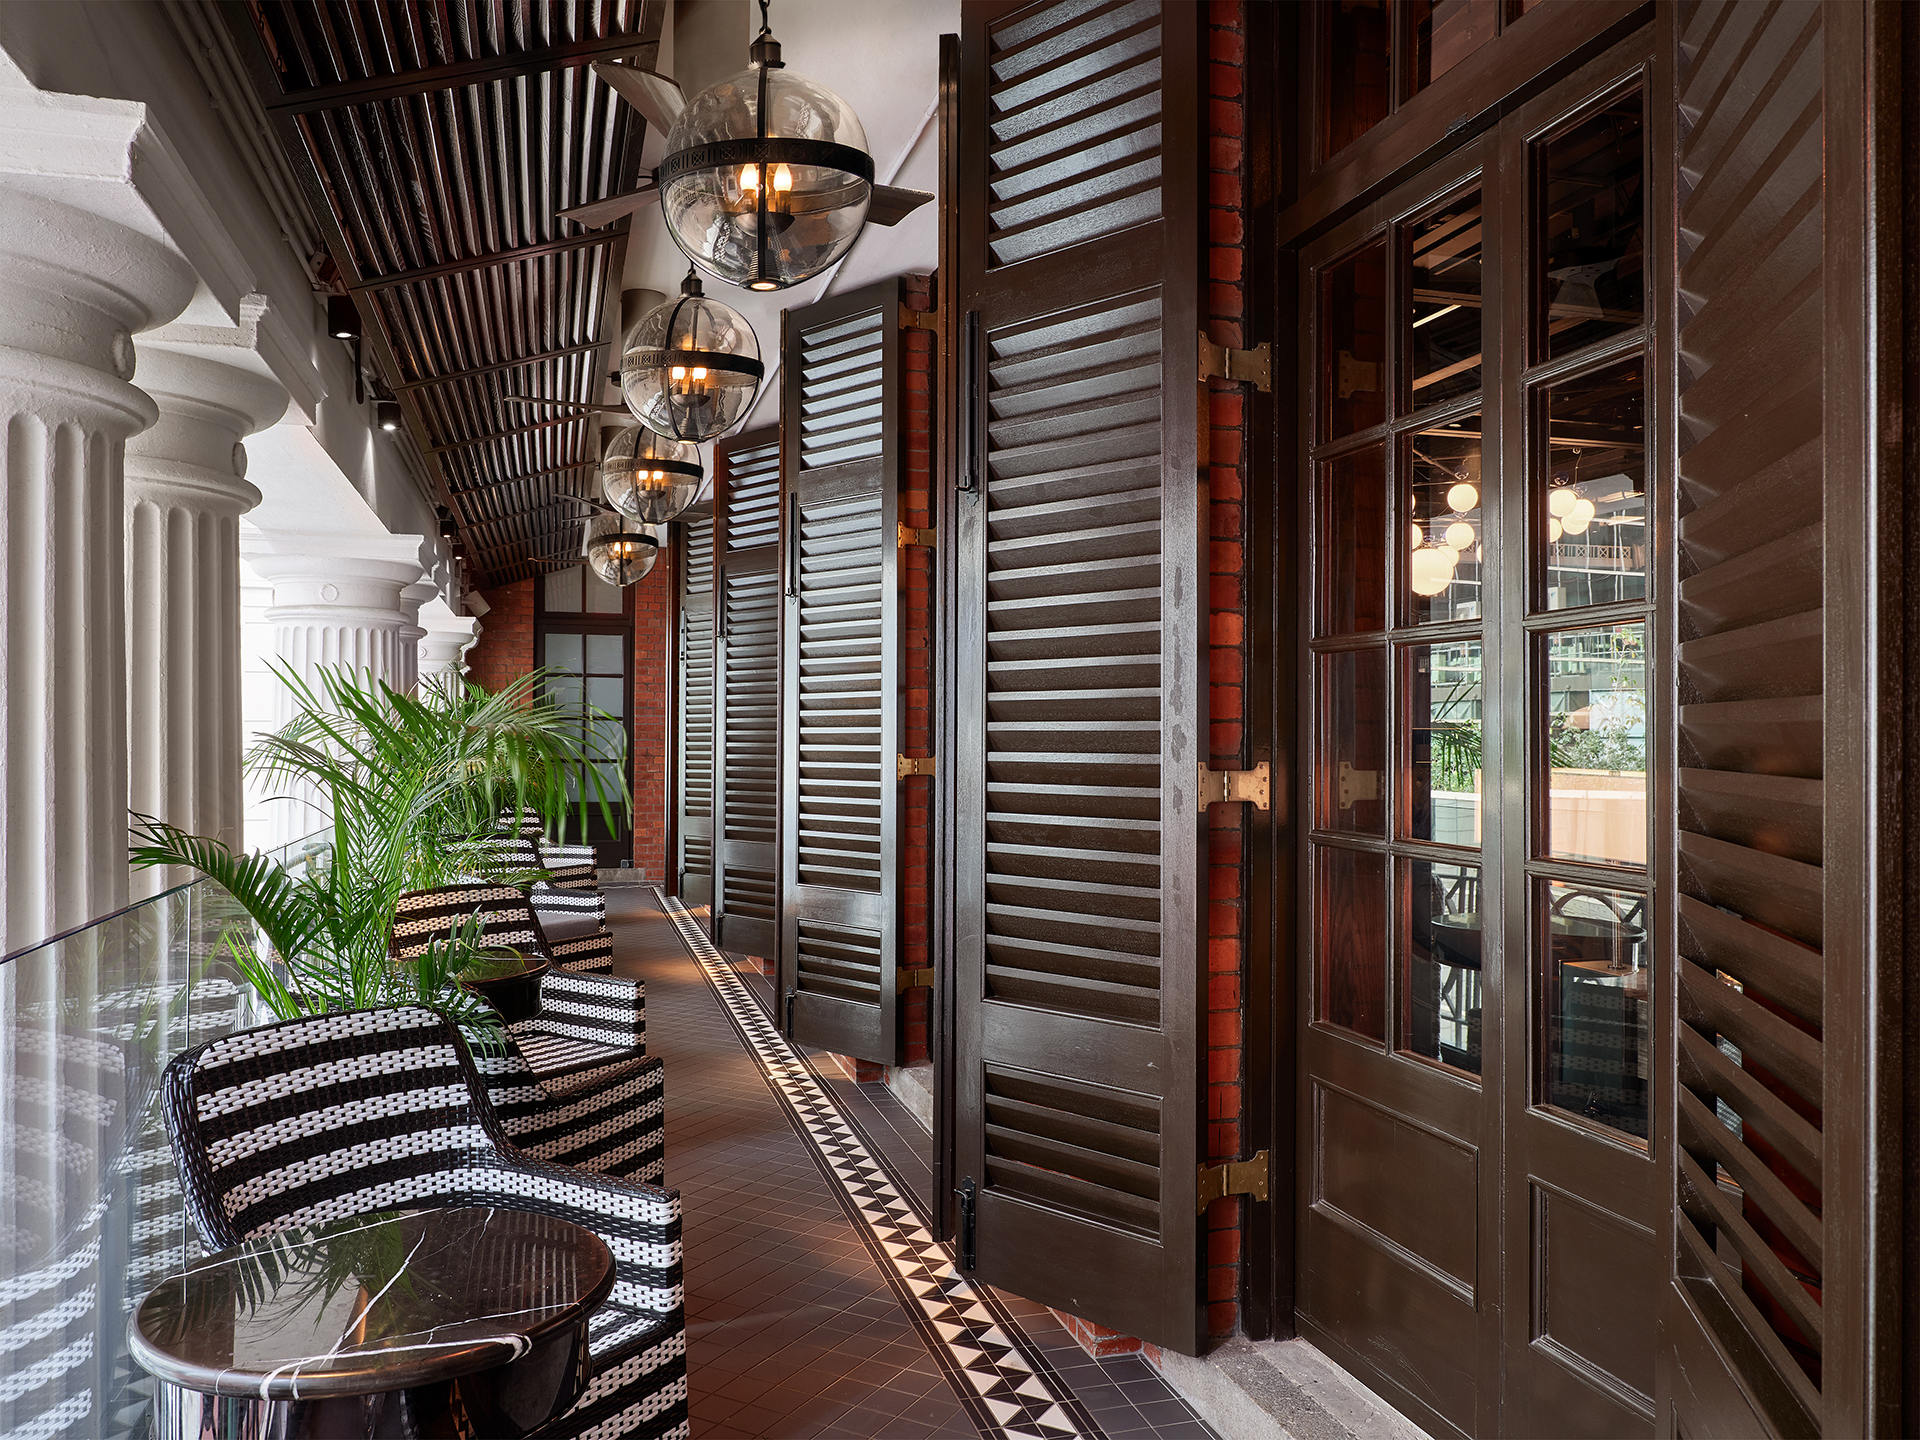 Outdoor area at Statement restaurant |AB Concept | Ed Ng | Terence Ngan | STIRworld